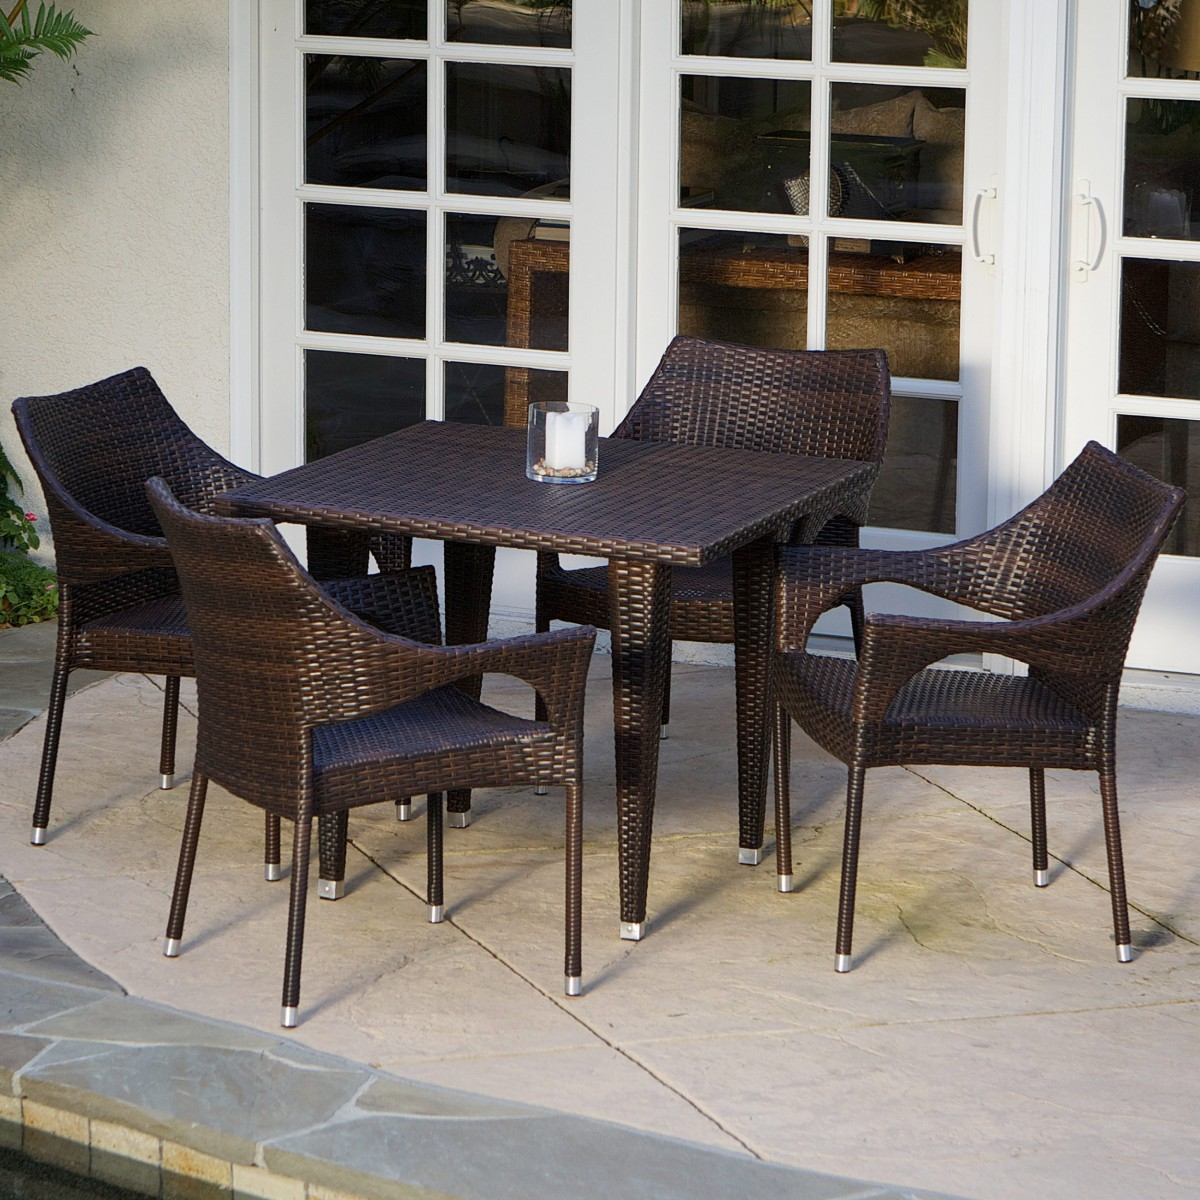 Del Mar Wicker 5 Piece Outdoor Dining Set with Stackable Wicker Chairs